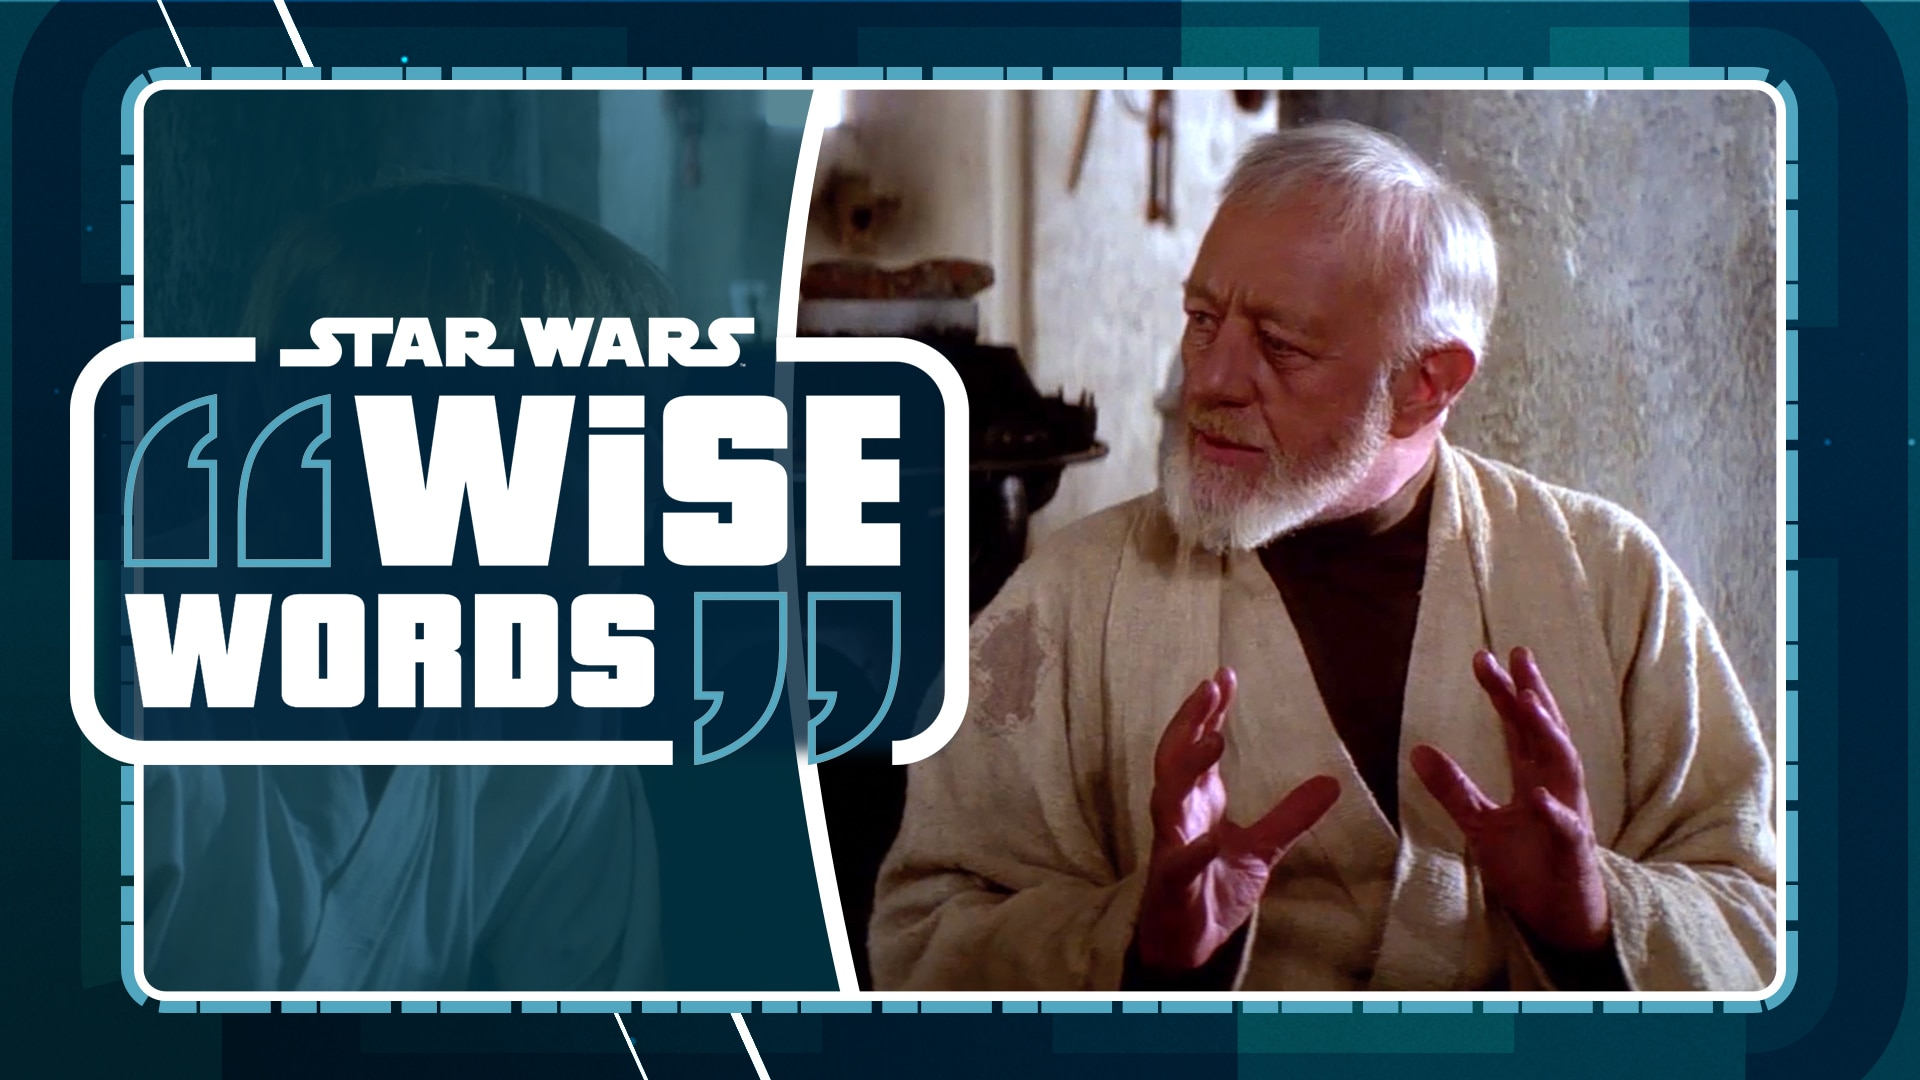 Obi-Wan Kenobi | Star Wars Wise Words